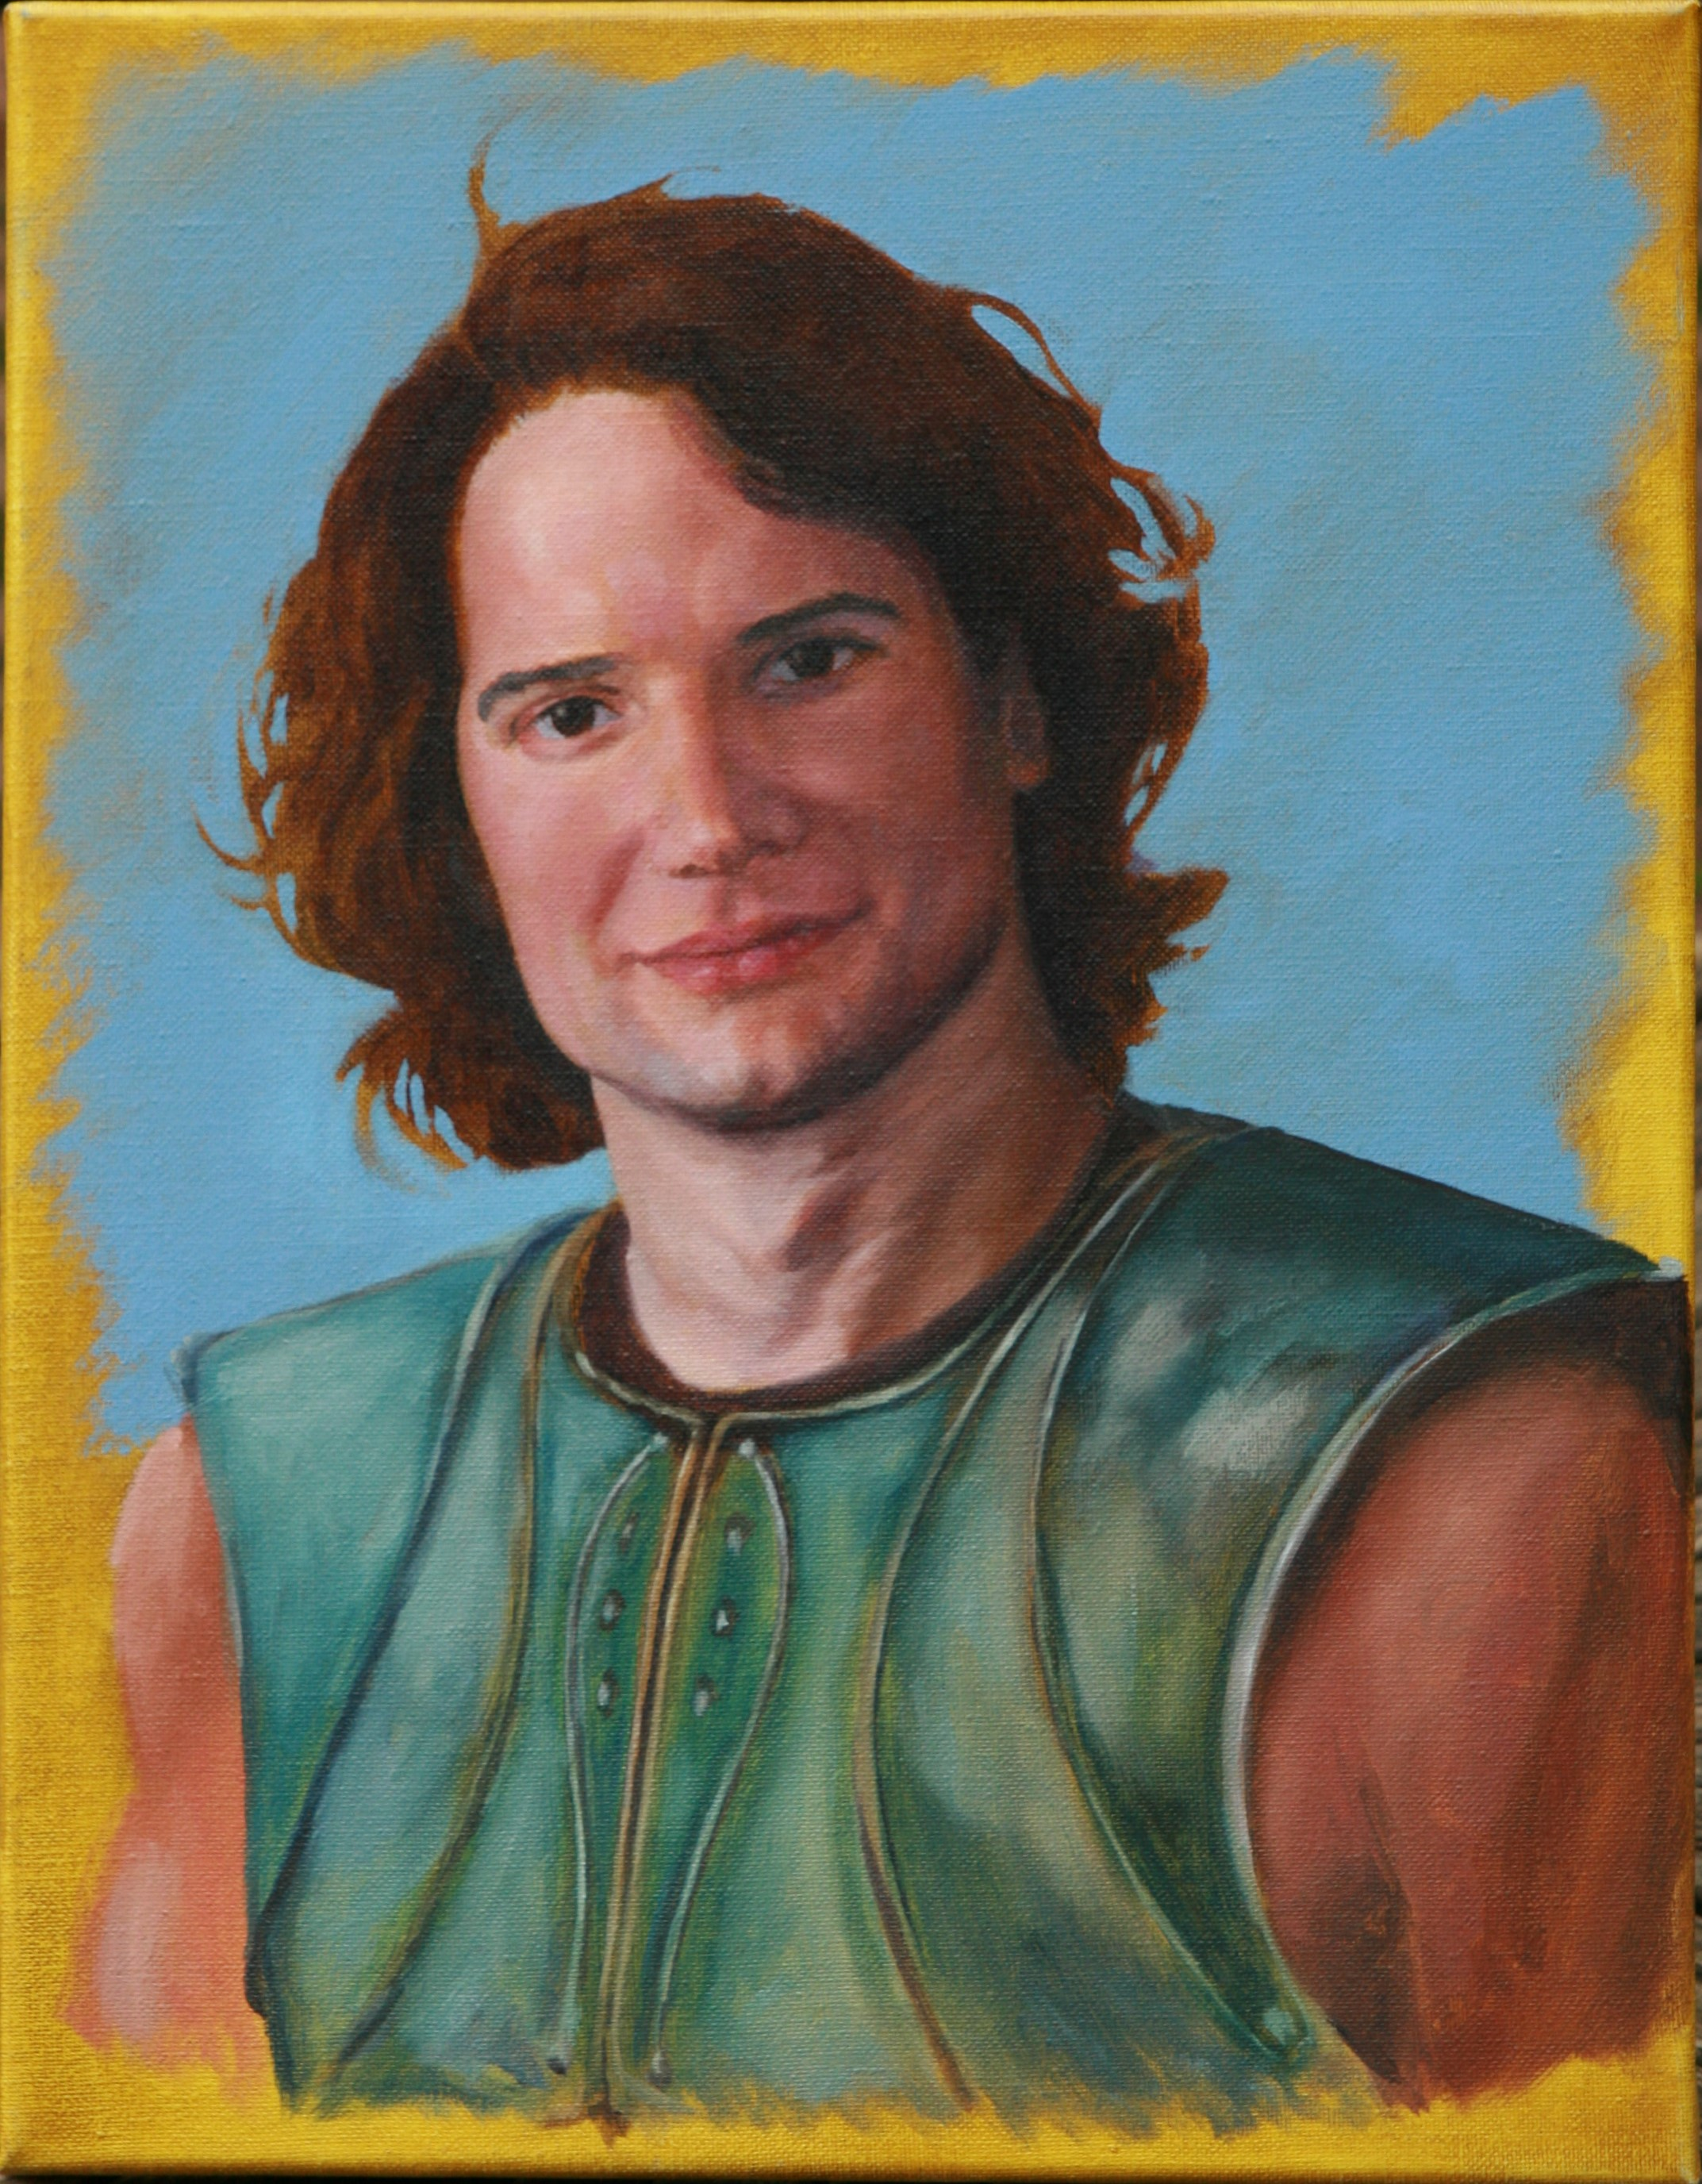 Mythical Portrait of Daryl